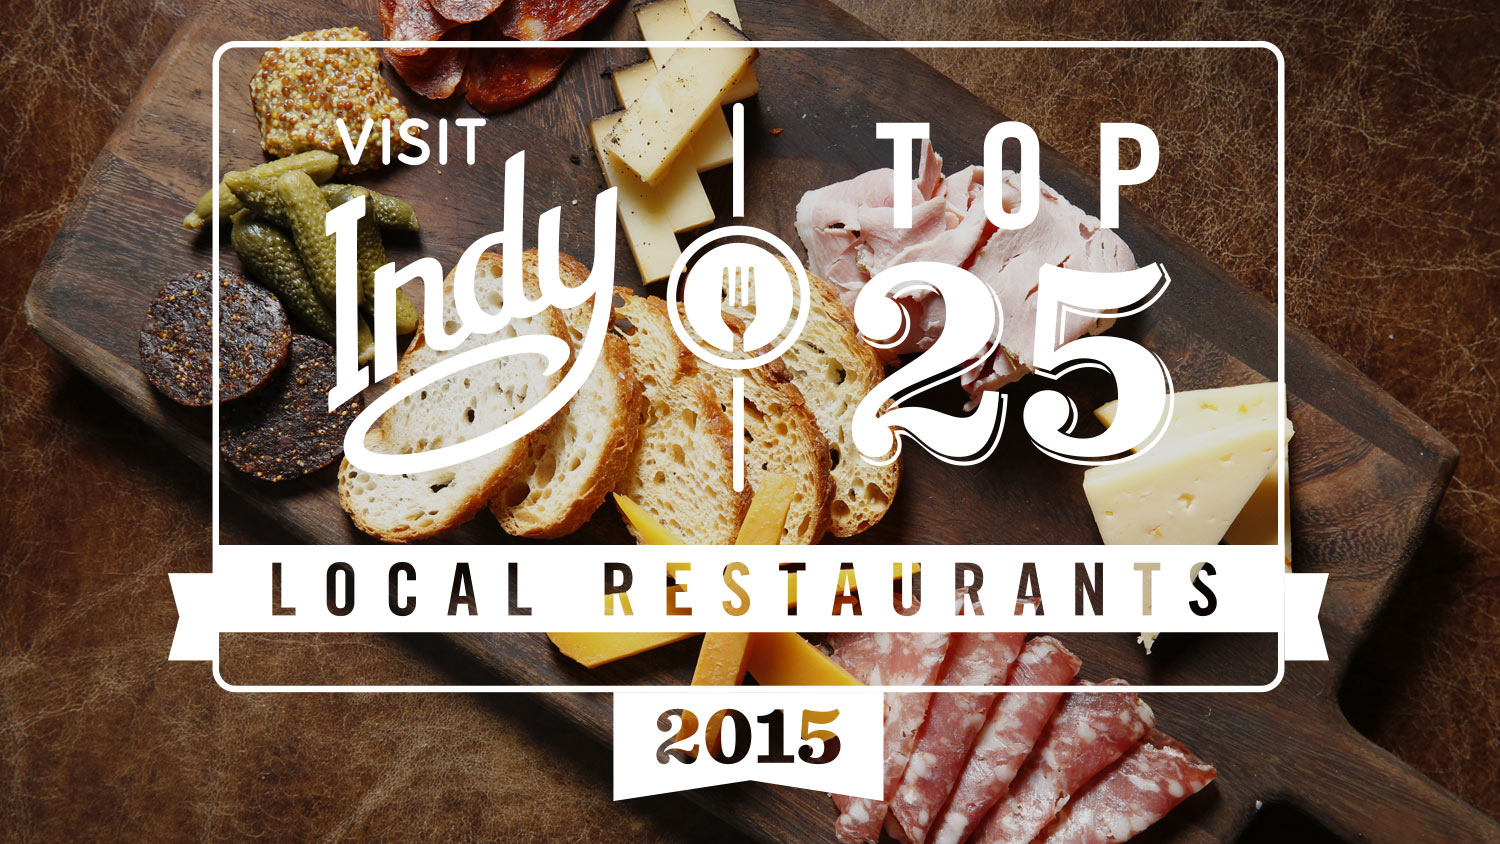 Top 25 local restaurants 2015